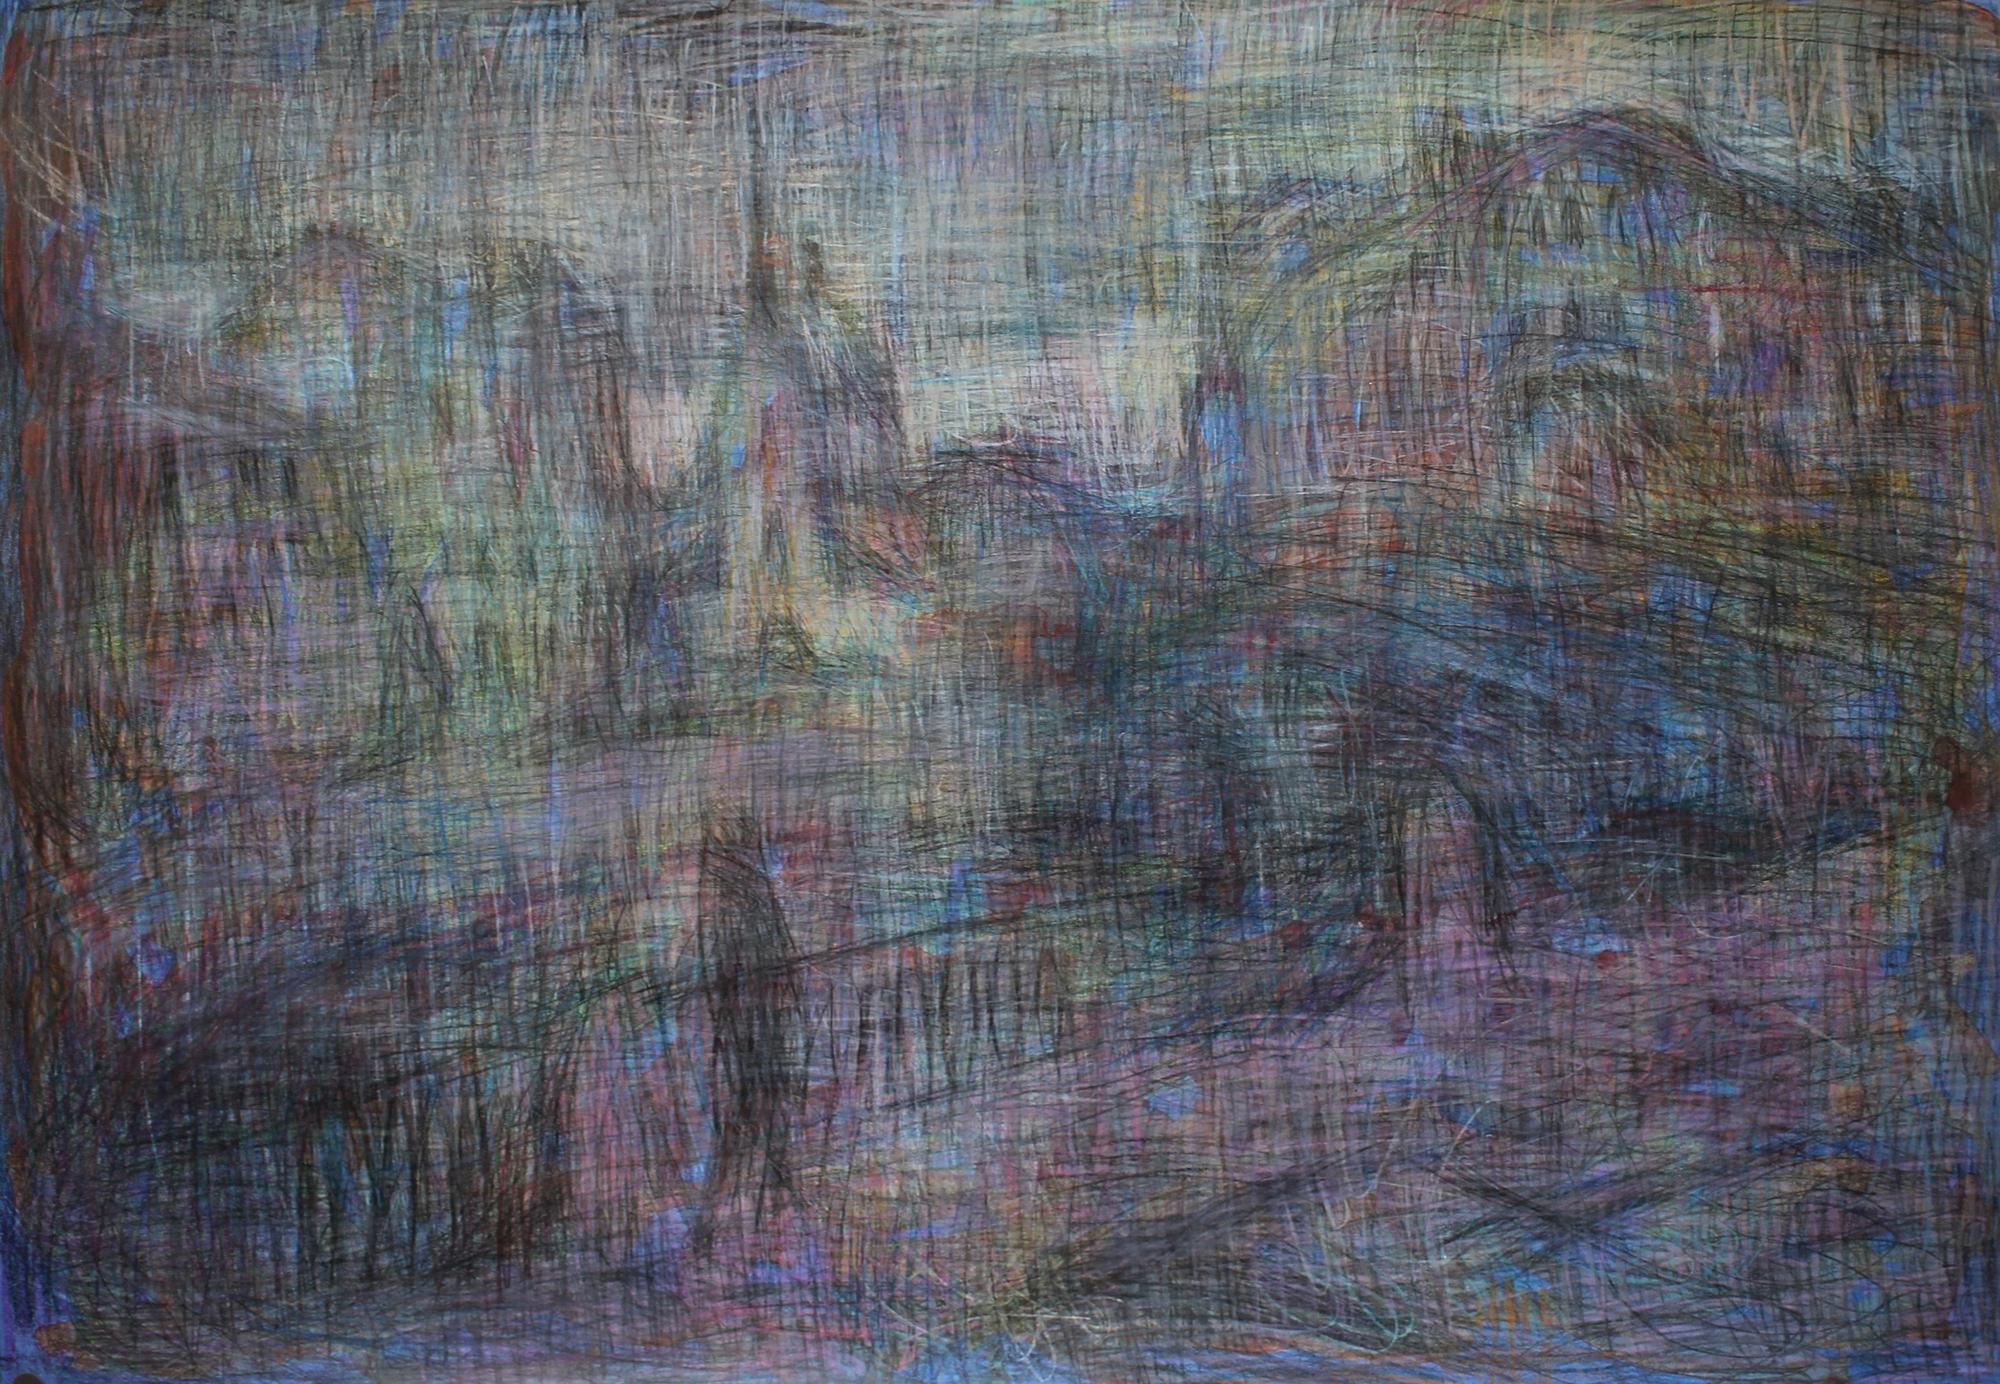 Into the White Night - 21st Century Contemporary Expressionist Urban Drawing